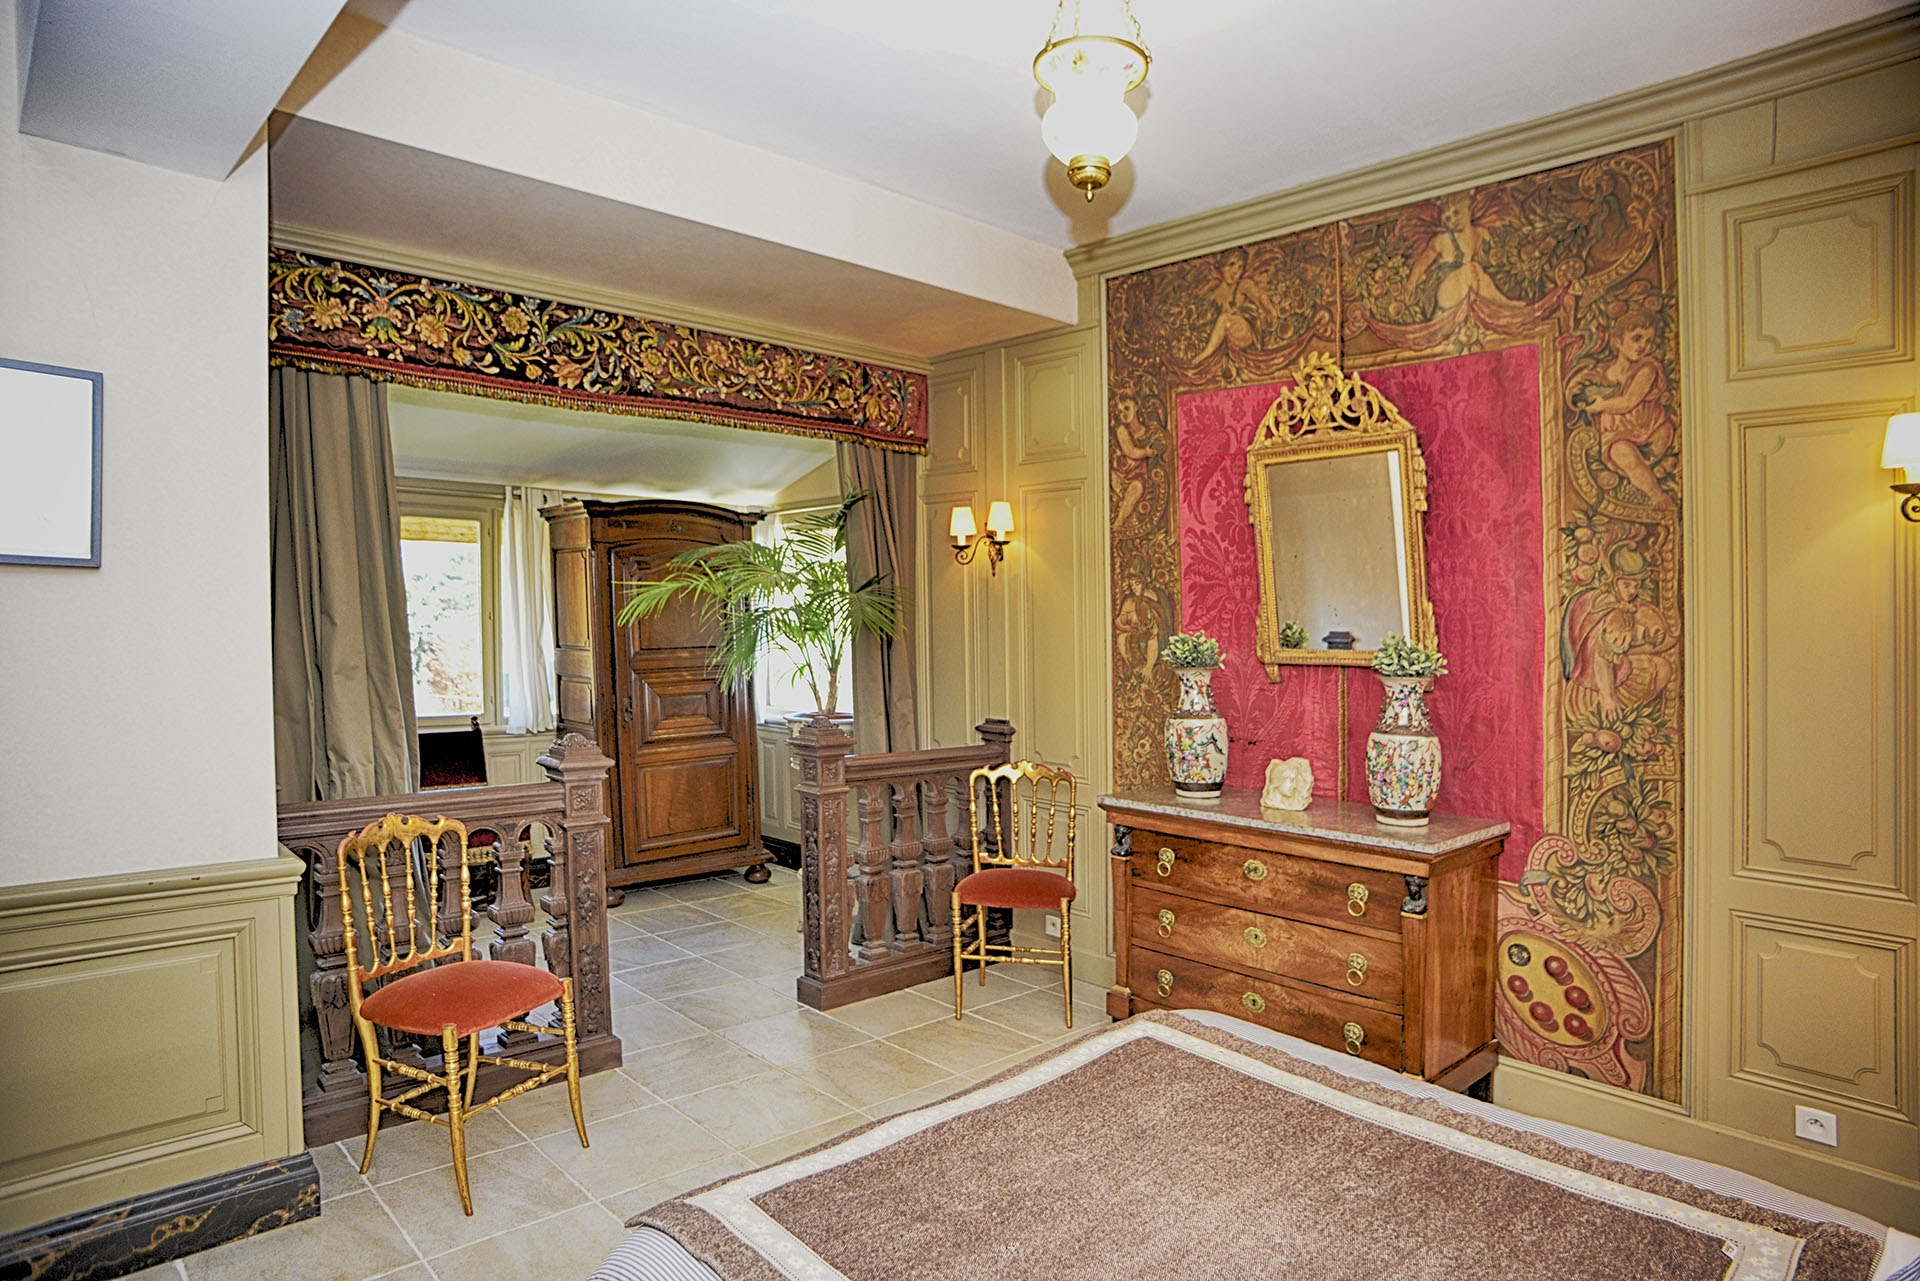 appart-cottage-chambre_2